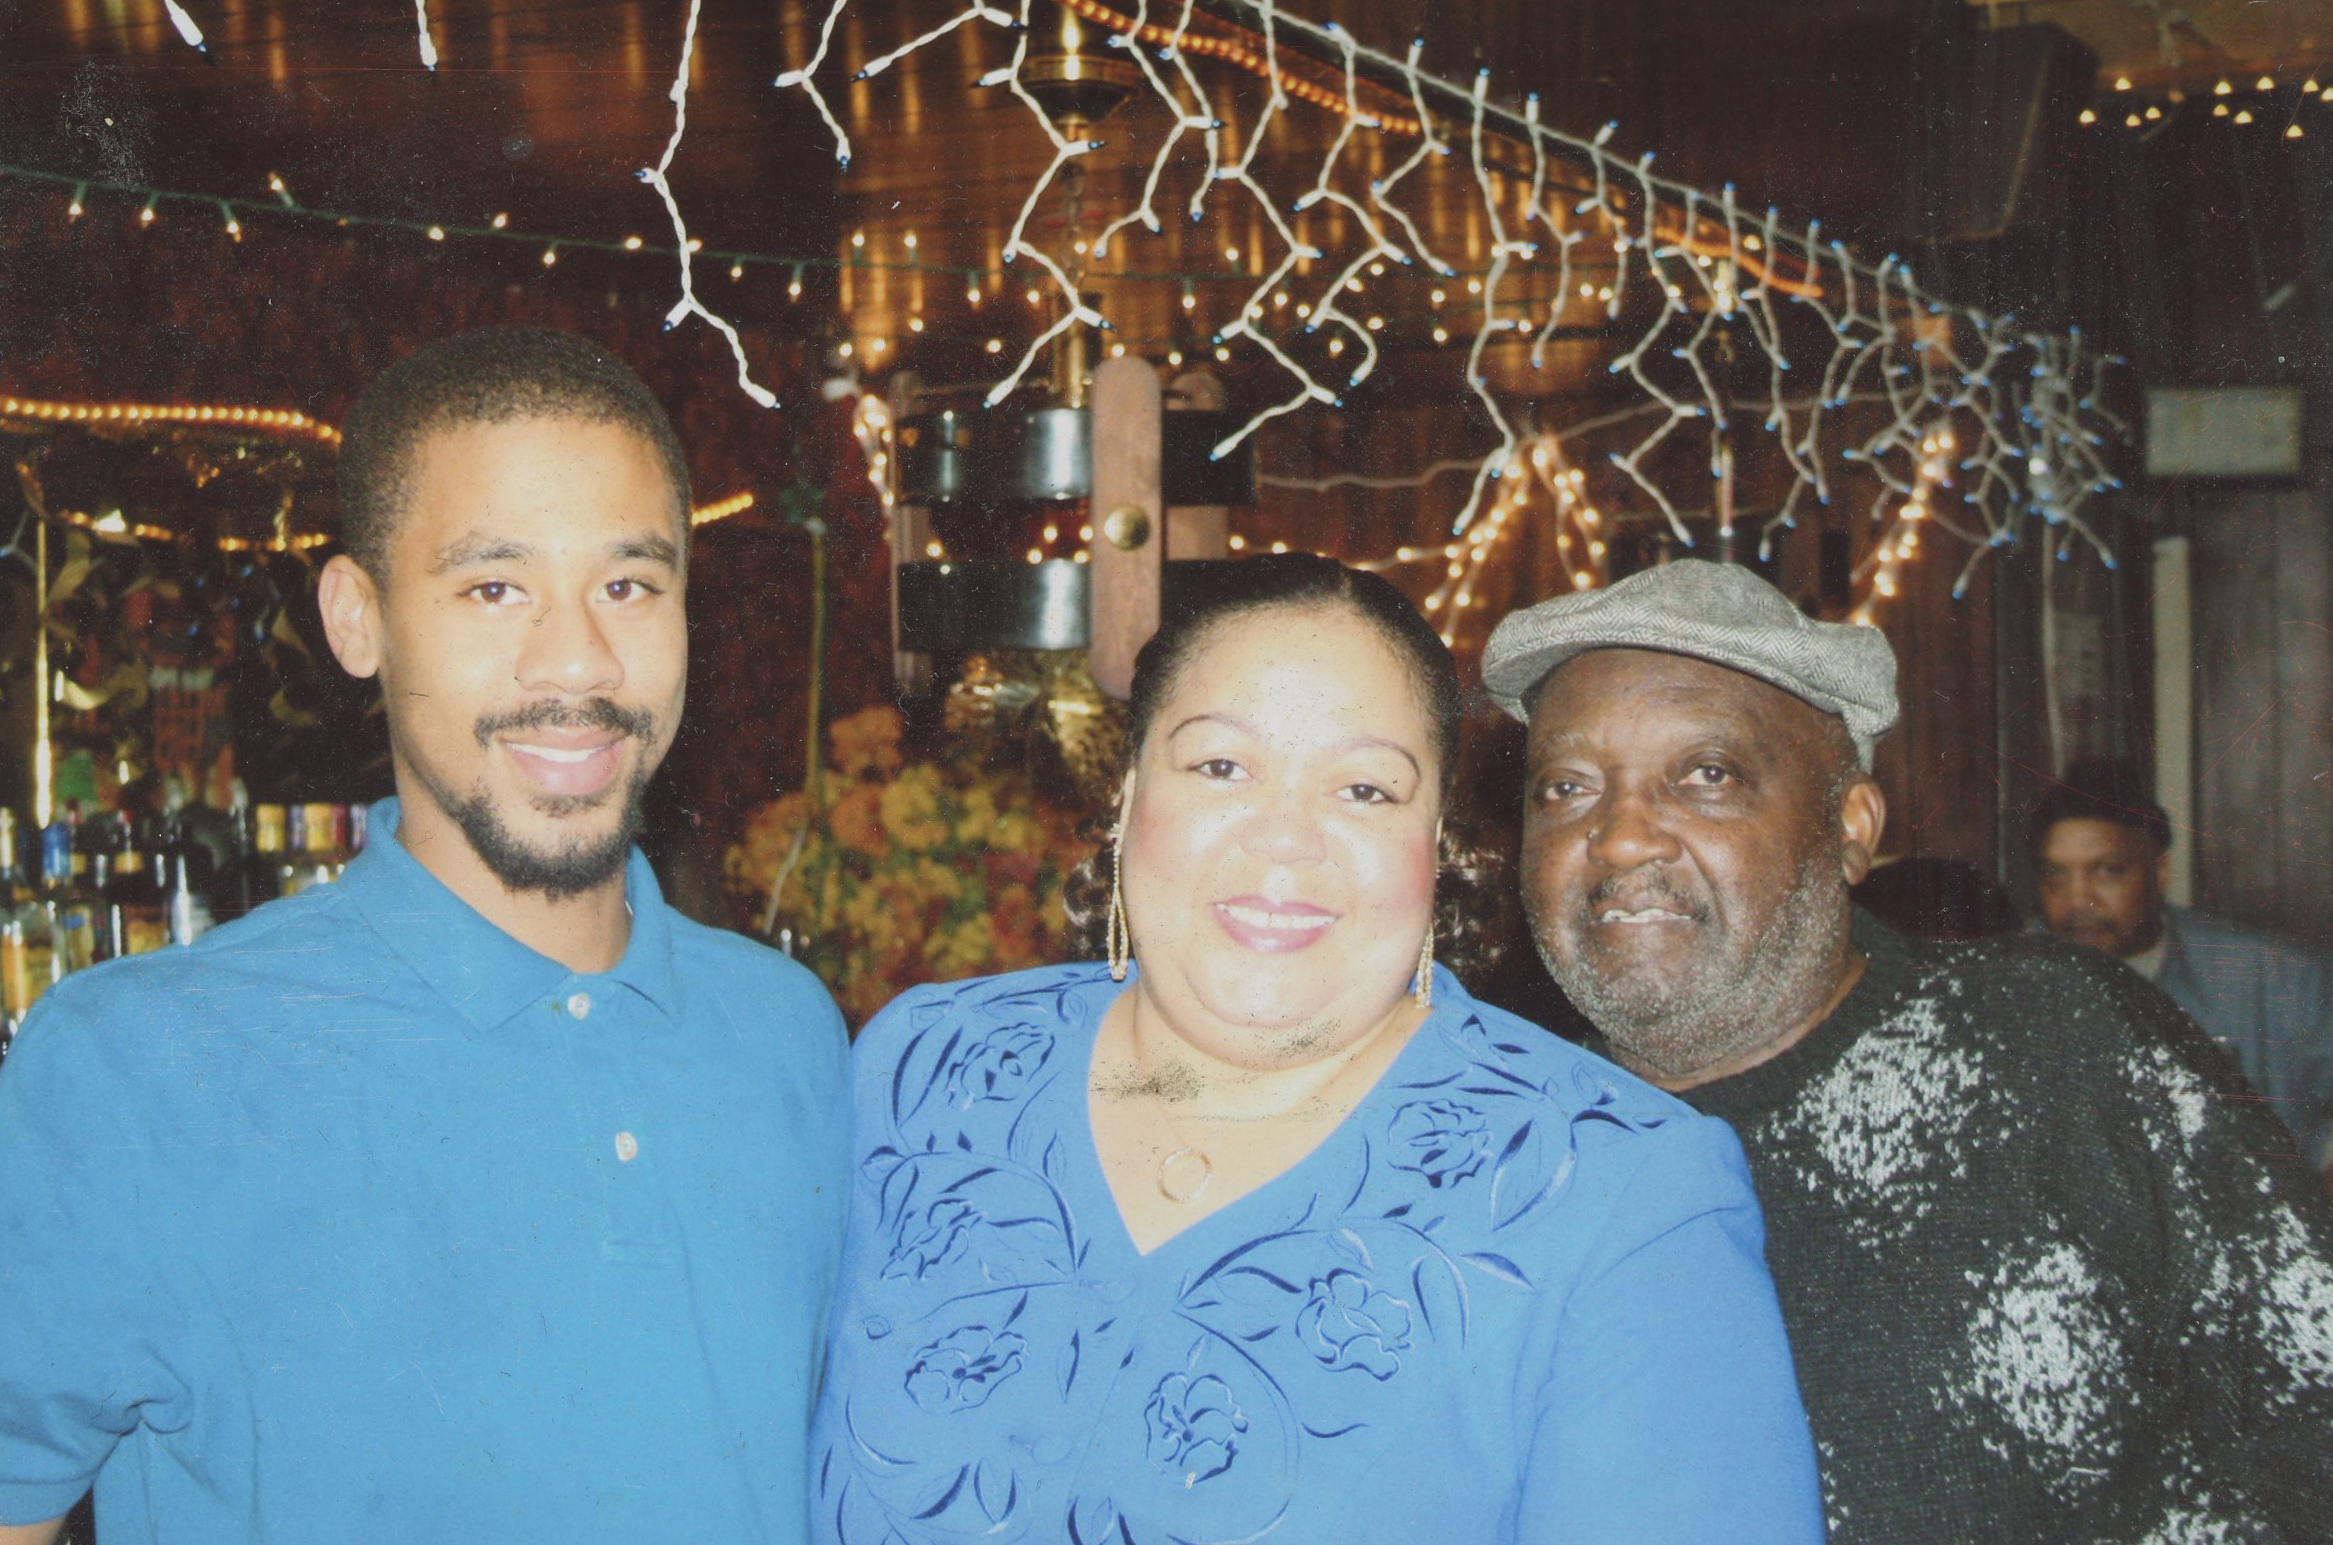 Homicide victim Jonathan Pitts, left, with his mother Gwen Pitts and stepfather Fred Ford, in an undated photo.